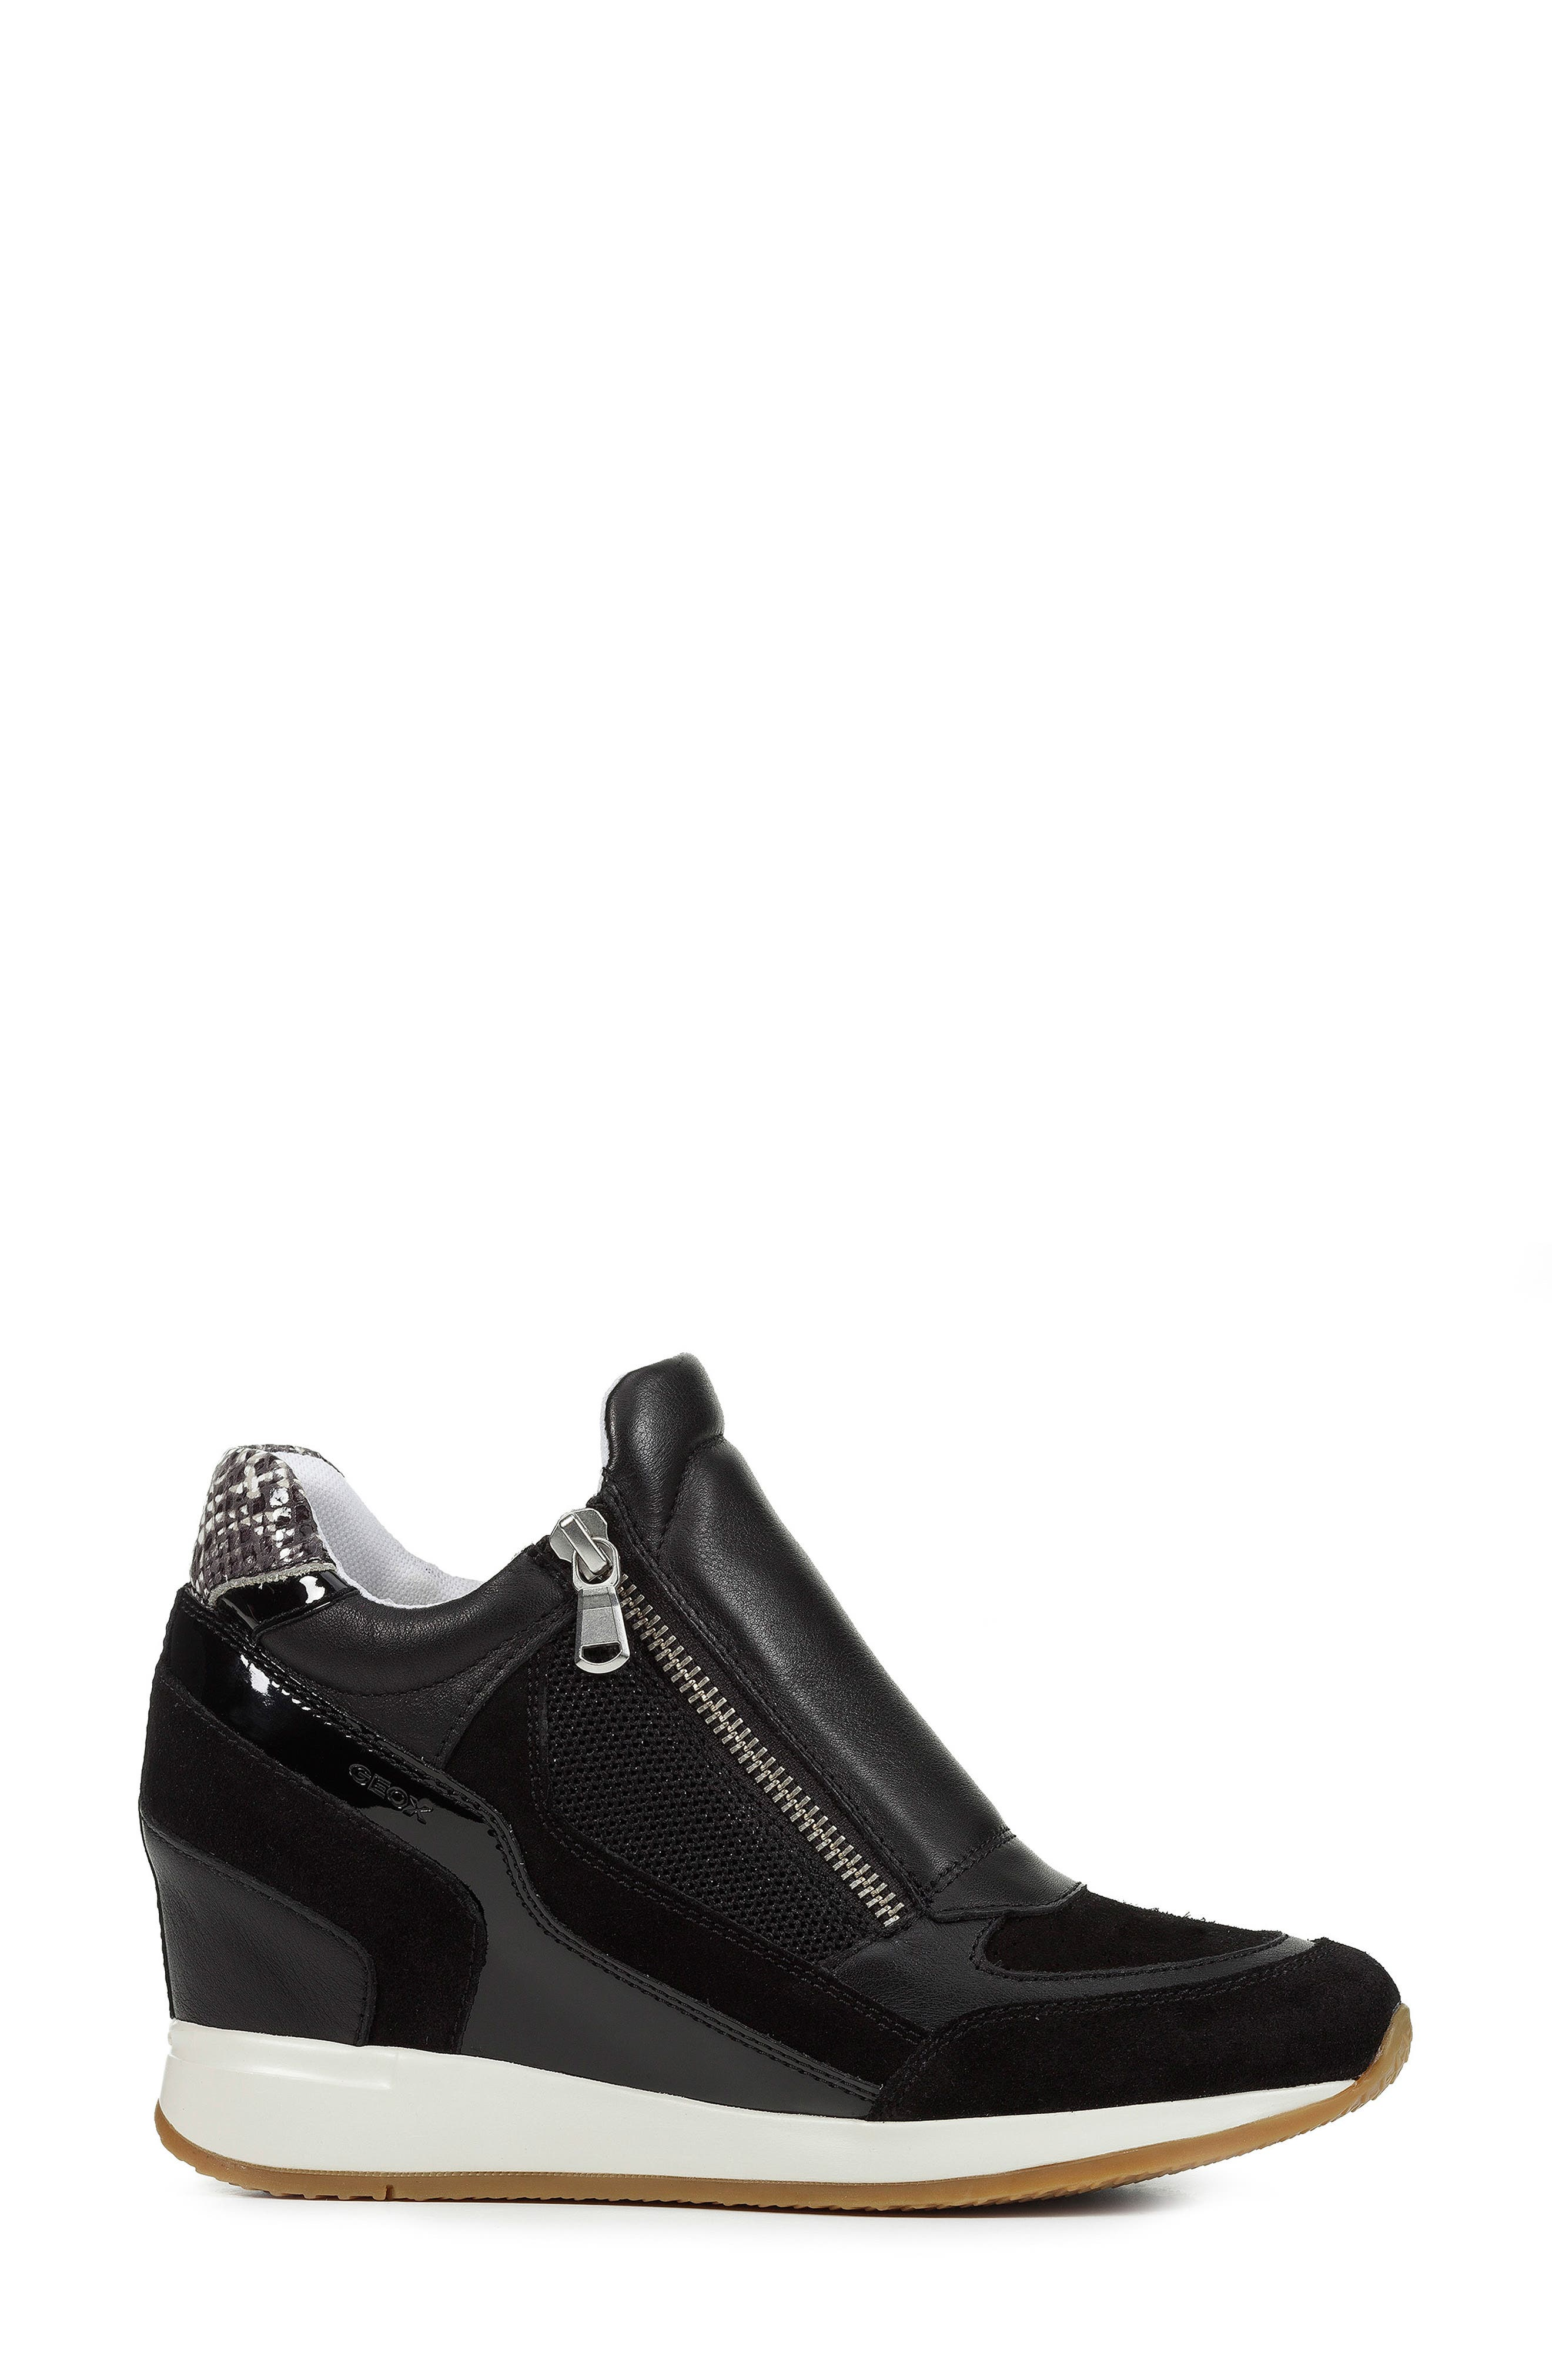 Nydame Wedge Sneaker,                             Alternate thumbnail 3, color,                             BLACK/ BLACK LEATHER